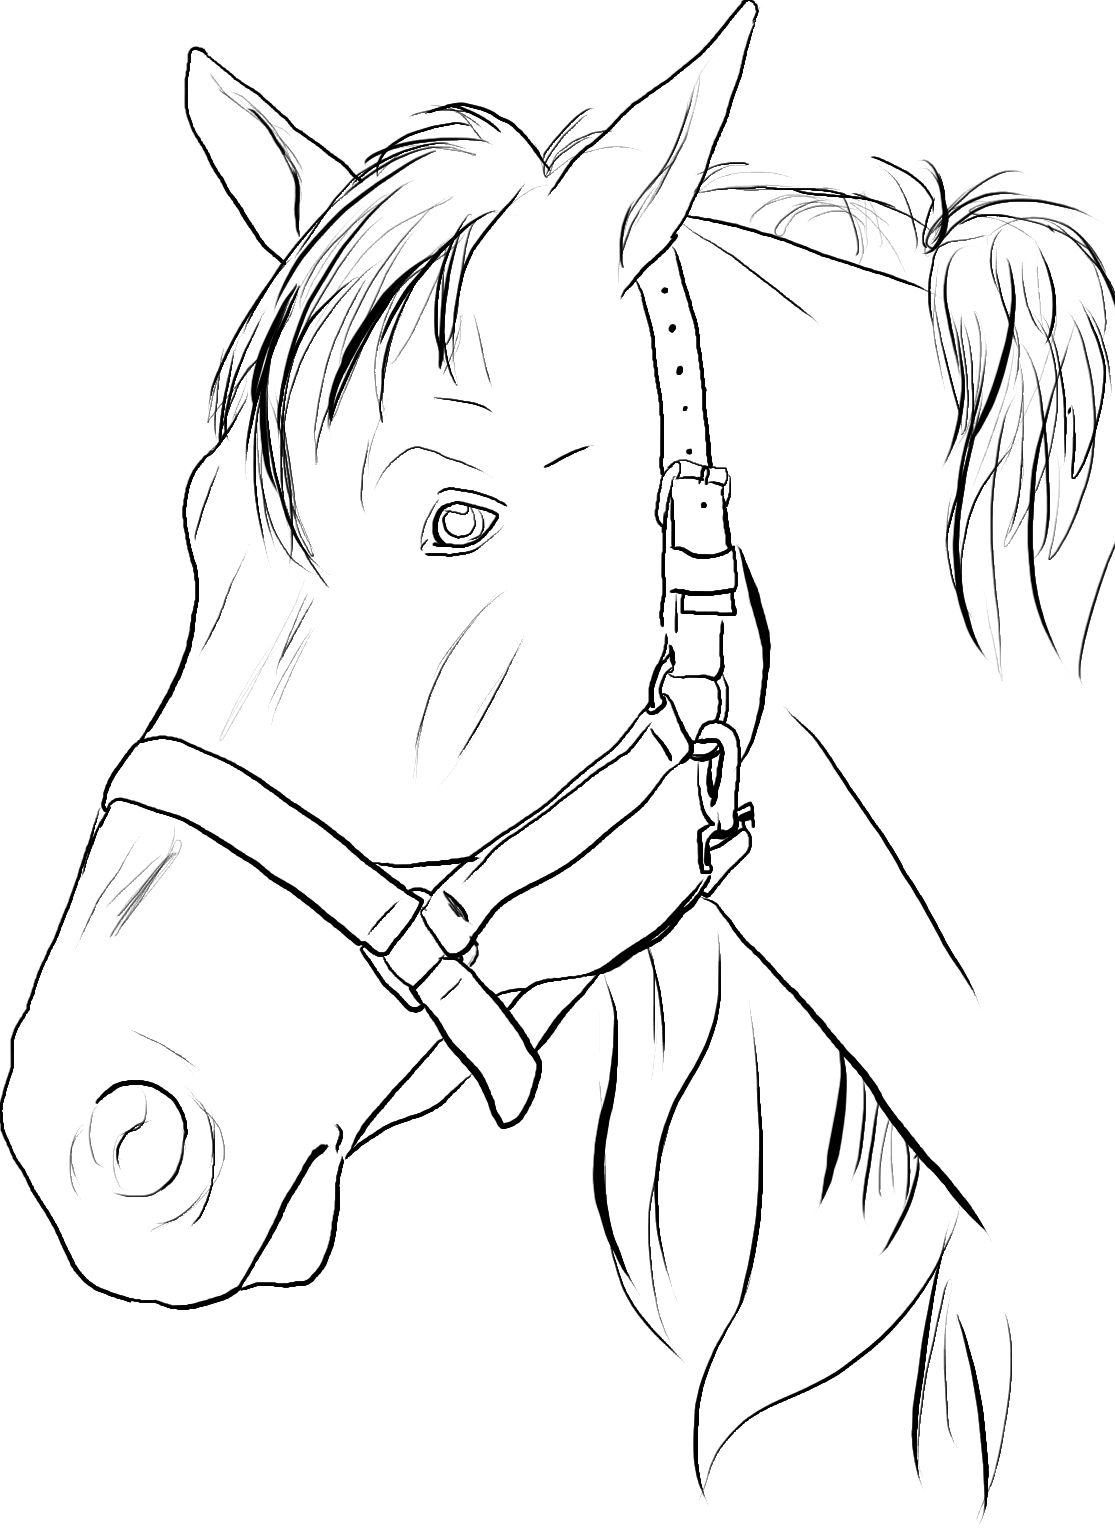 Horse head coloring pages to print Google Search horse